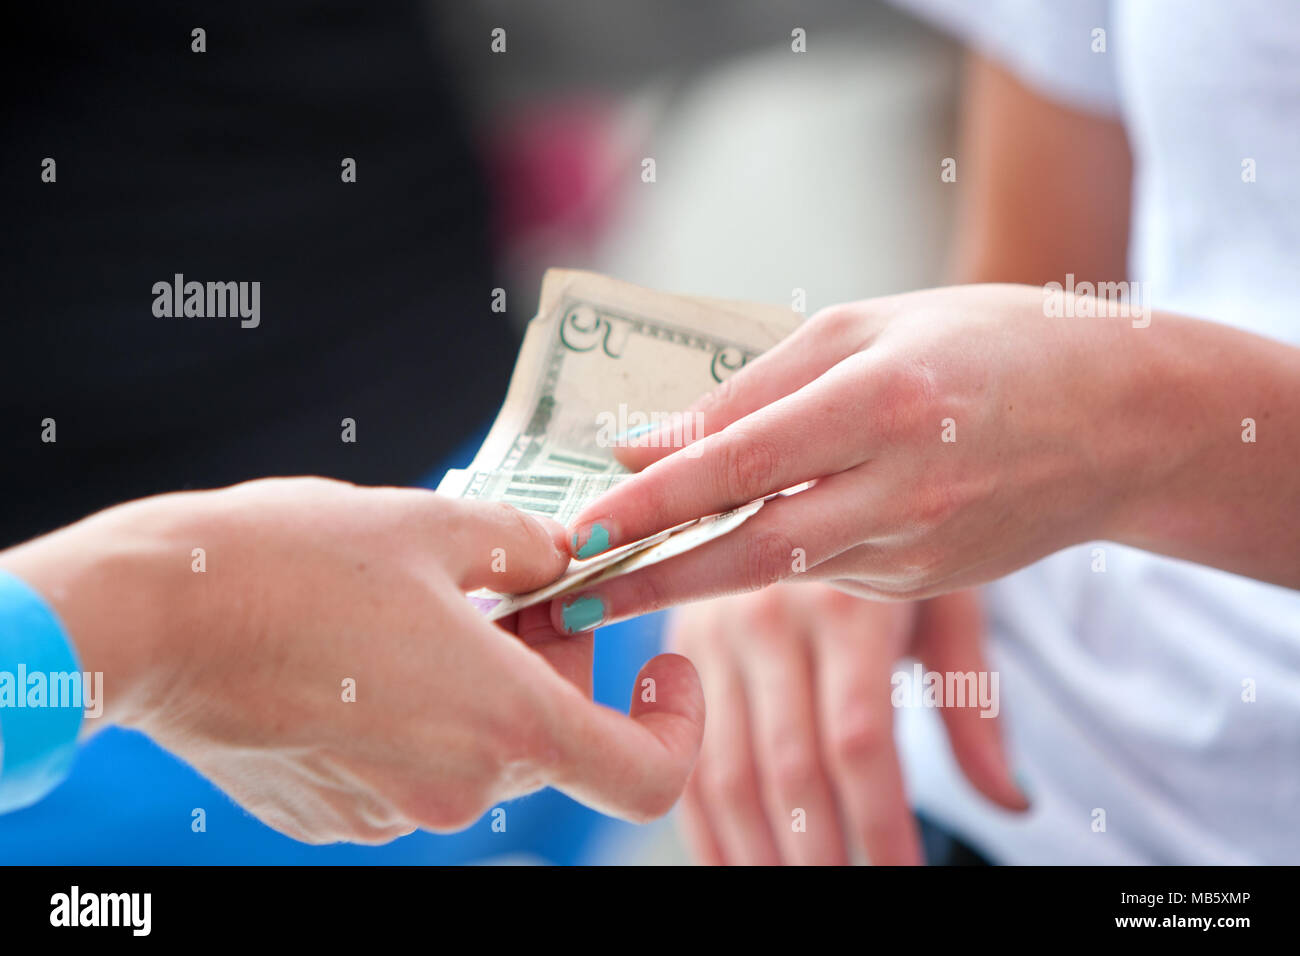 Closeup of two women's hands exchanging money at a vendor booth at the Annual Atlanta Ice Cream Festival on July 27, 2013 in Atlanta, GA. - Stock Image